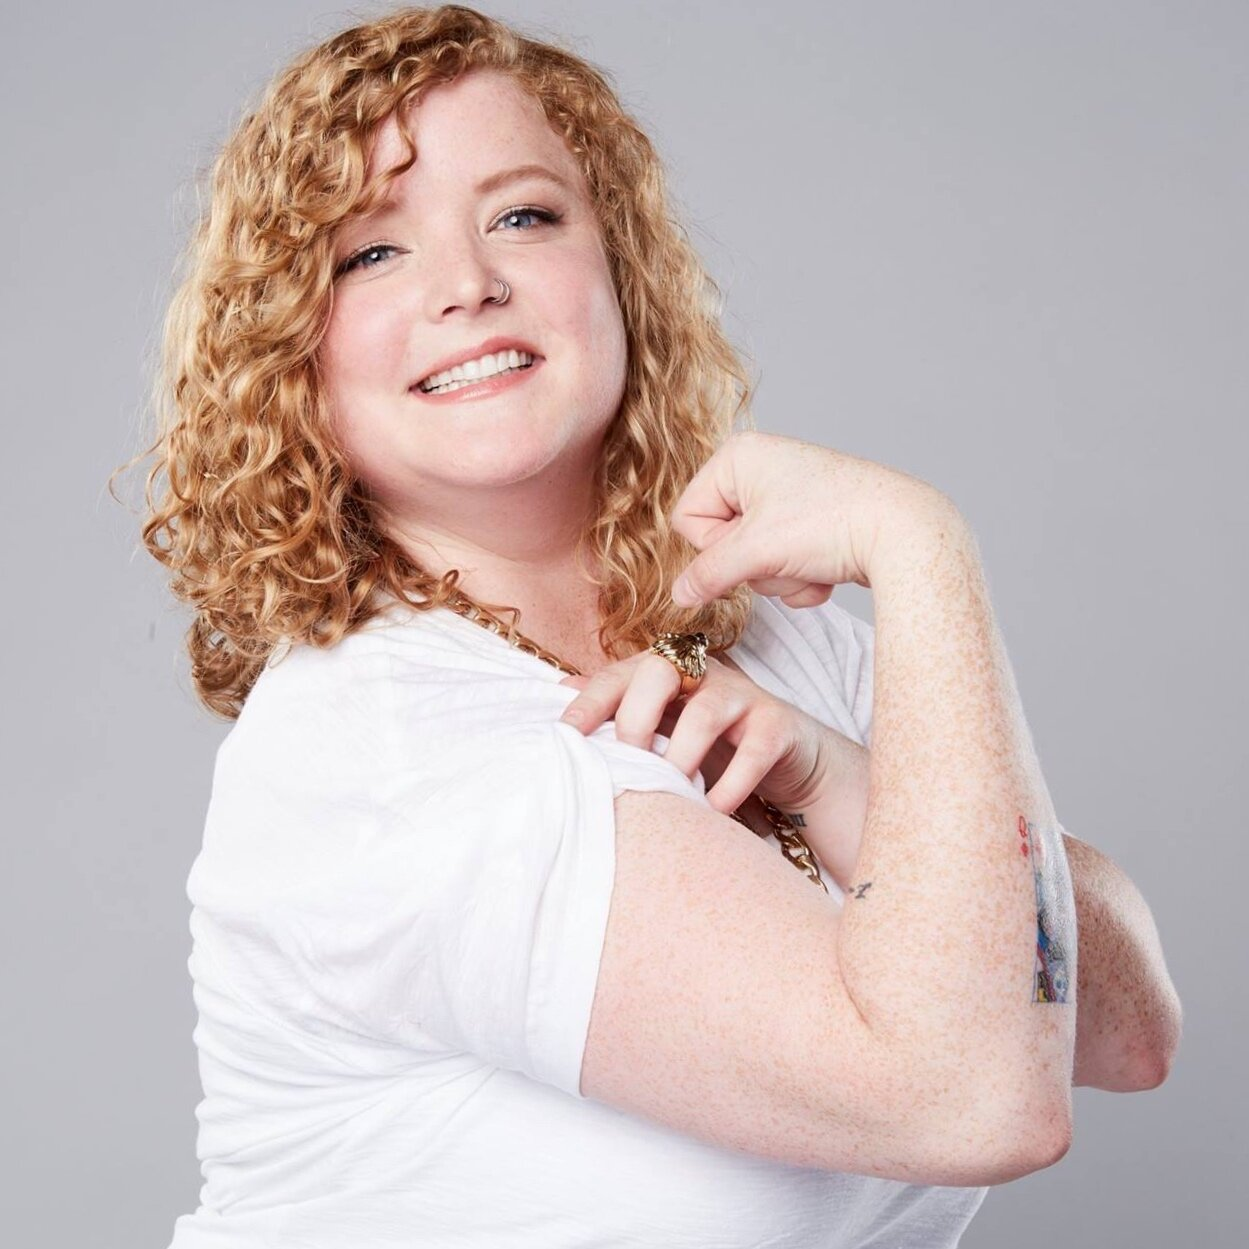 """Minnesota native Rachel Scanlon is a stand-up comedian, writer and co-host of the weekly podcast/live show """"Two Dykes and A Mic"""". Rachel shares her stories about being a Midwest gal living in Los Angeles, and singing her way out of the closet. She is also a ranch dressing enthusiast. She has performed all over the country including The Comedy Store, The Hollywood Improv, Acme Comedy Club, Punchline Comedy Club, and many more. In 2018, Fullscreen premiered her first comedy special """"Rachel Scanlon is Hot & Hungry"""".  """"Rachel Scanlon is a comedic breath of fresh Midwest air. She's high energy, absurdly positive, and your new comedy crush."""""""